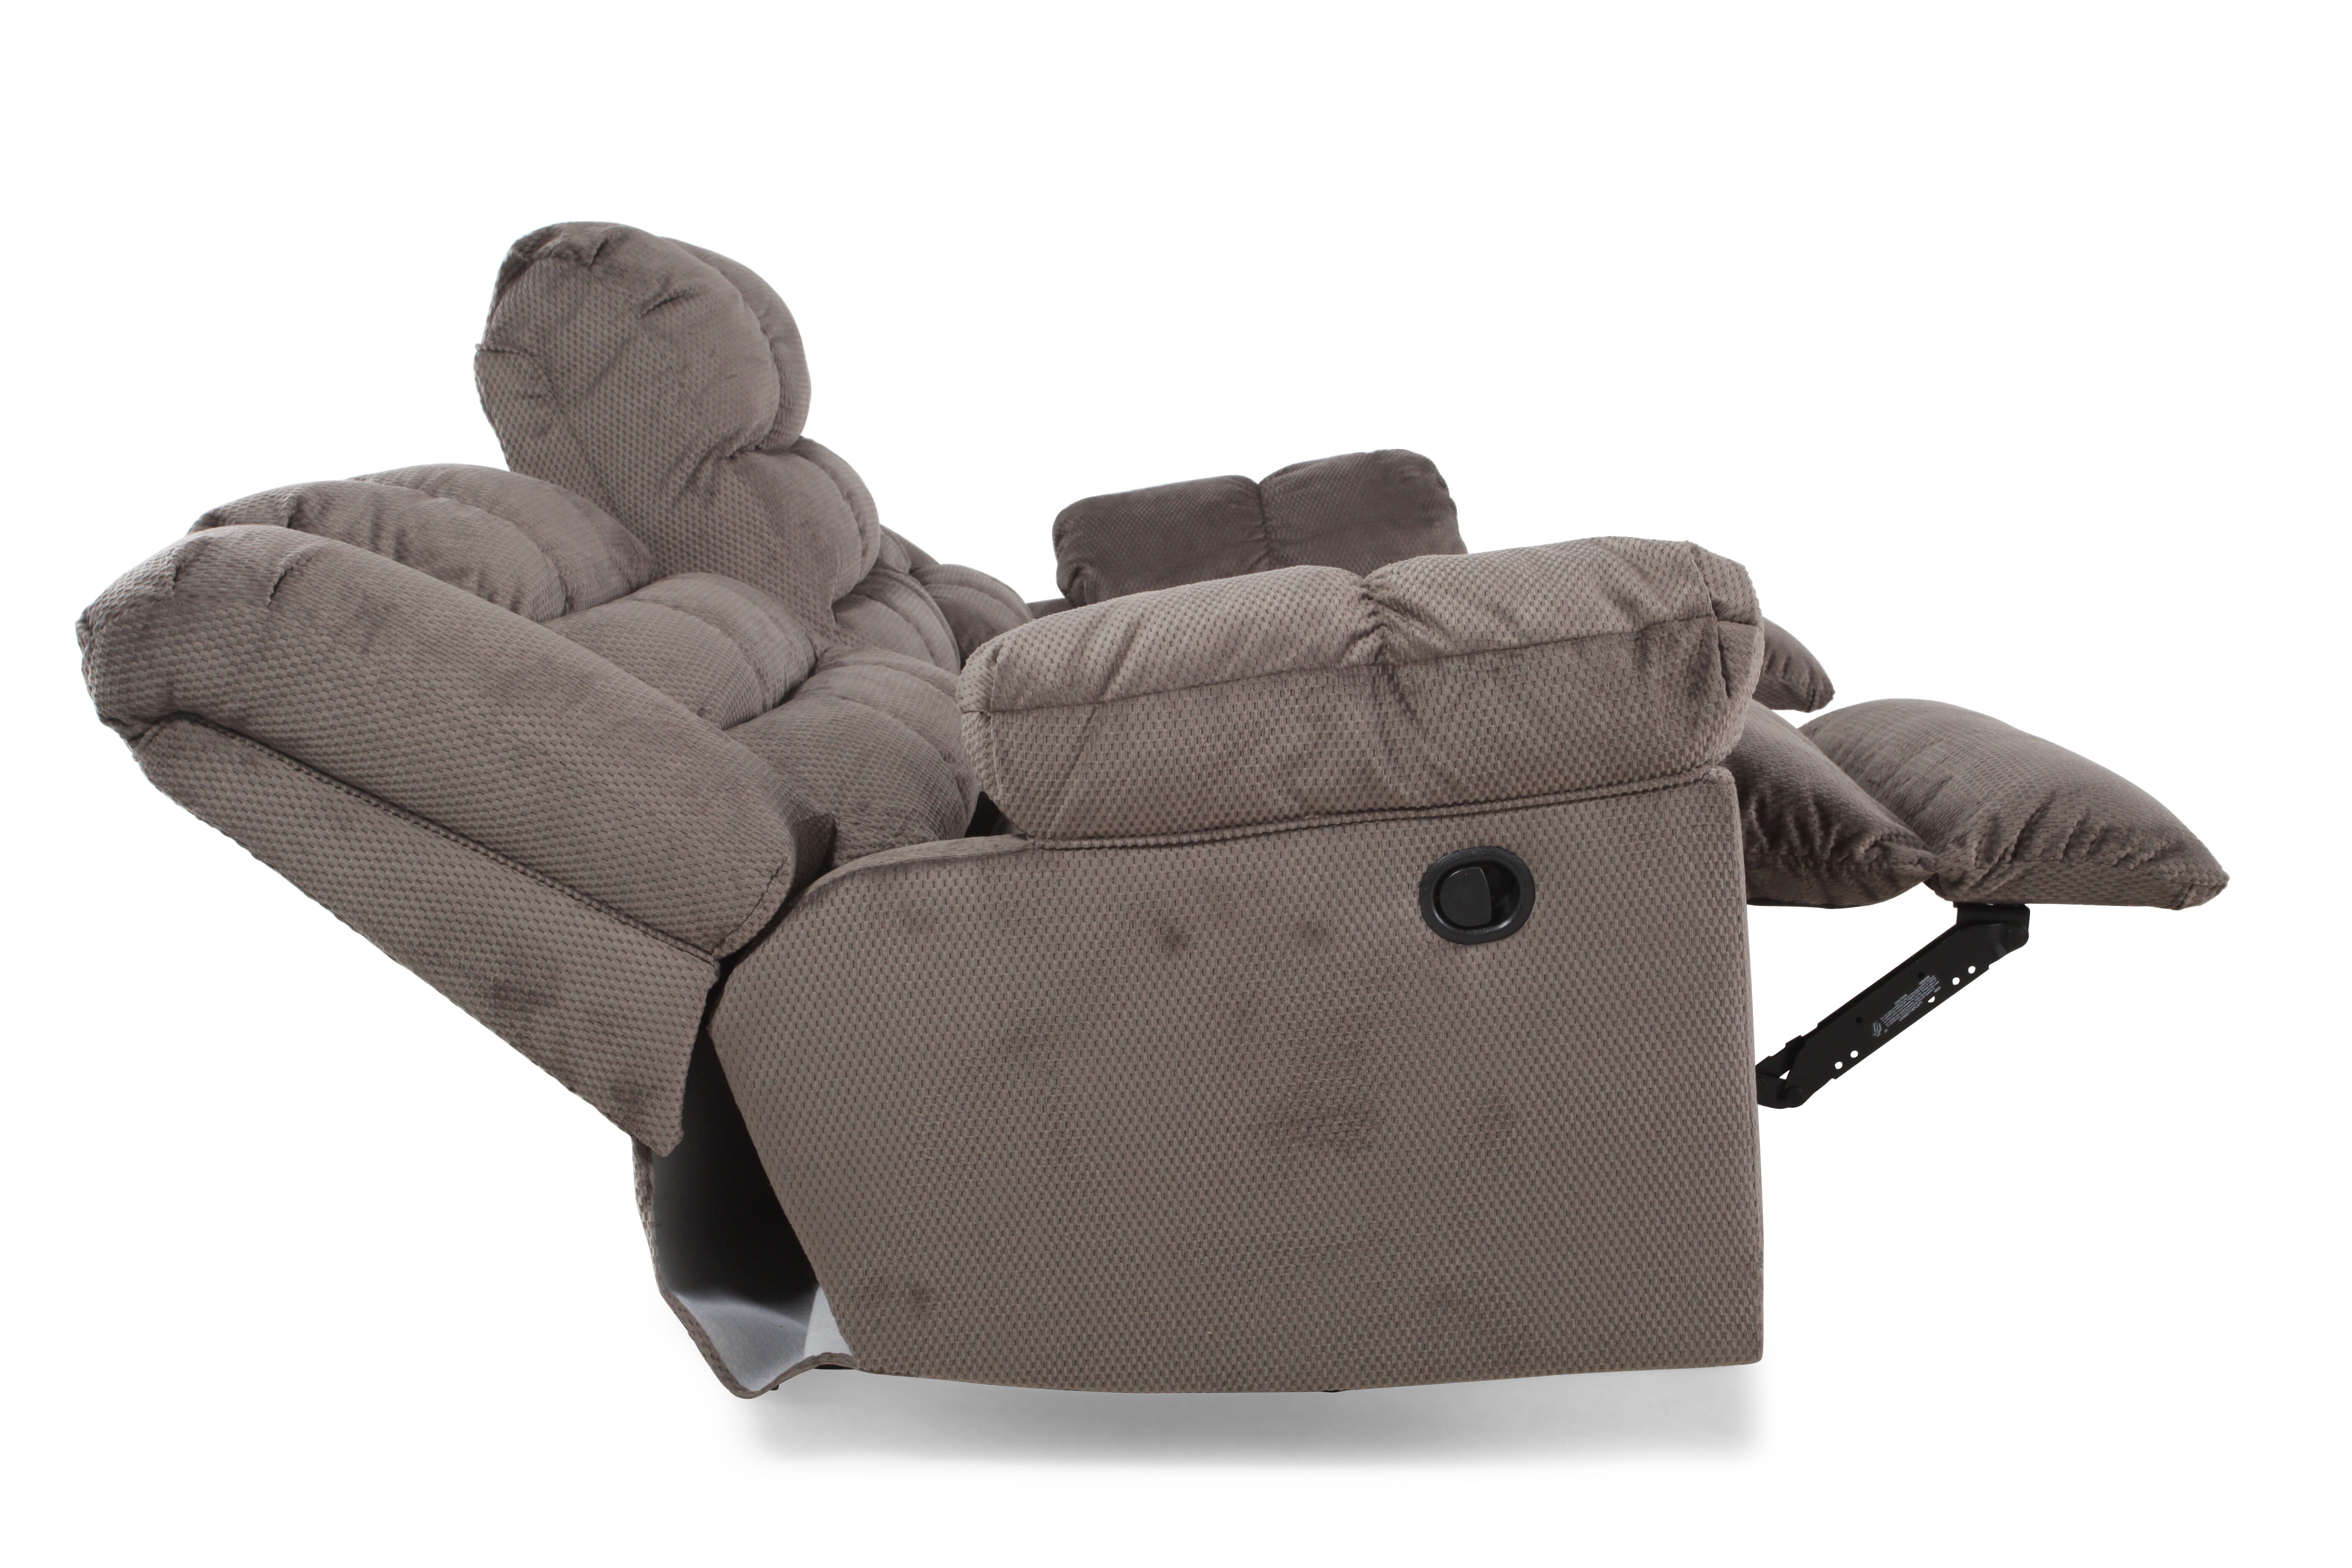 Ashley Mort Charcoal Reclining ...  sc 1 st  Mathis Brothers & Ashley Mort Charcoal Reclining Sofa | Mathis Brothers Furniture islam-shia.org